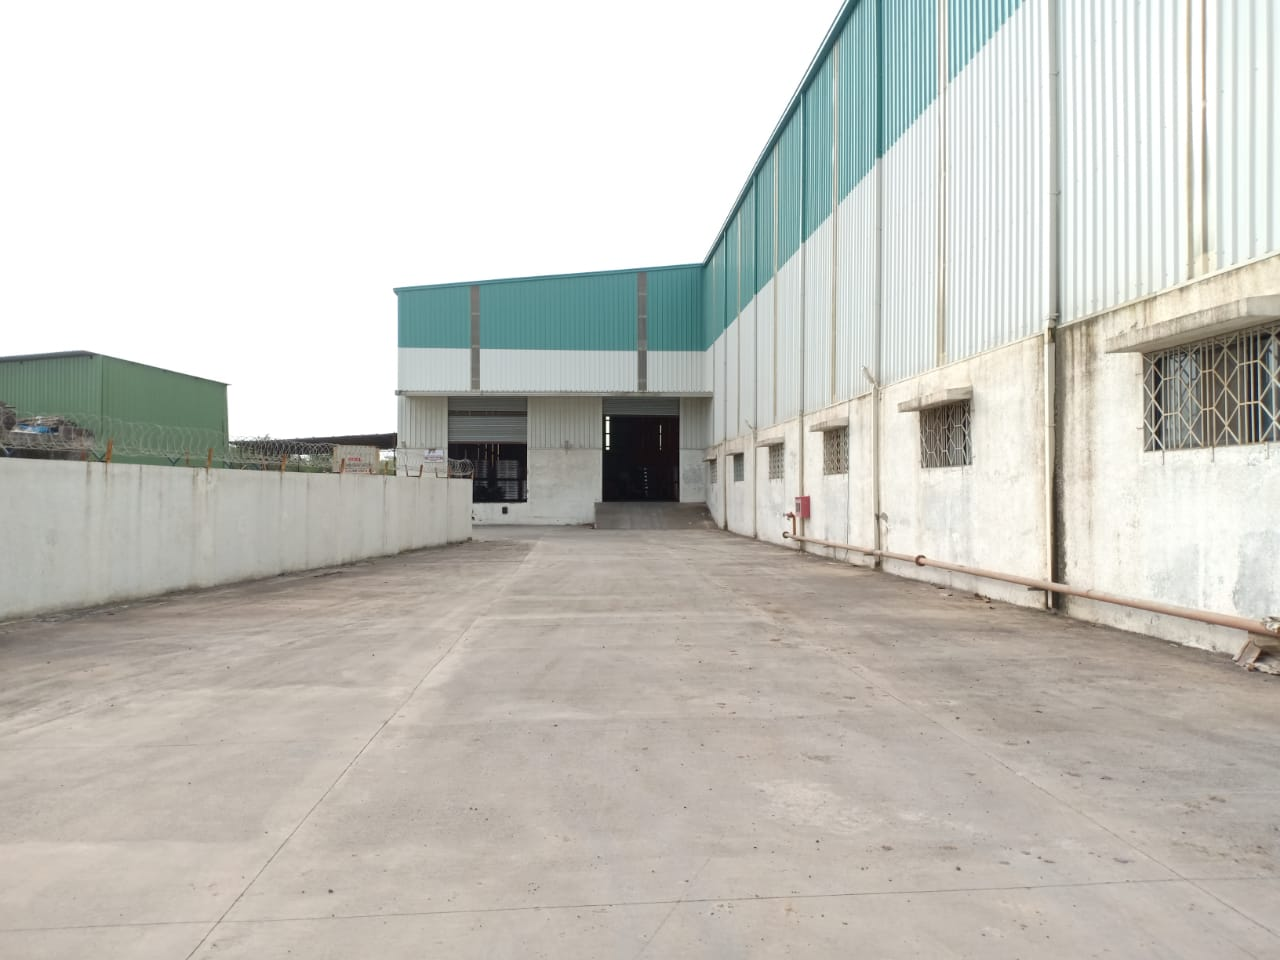 500000 SQ.FT INDUSTRIAL SHED FOR RENT | LEASE IN CHANGODAR AHMEDABAD – 7043395463